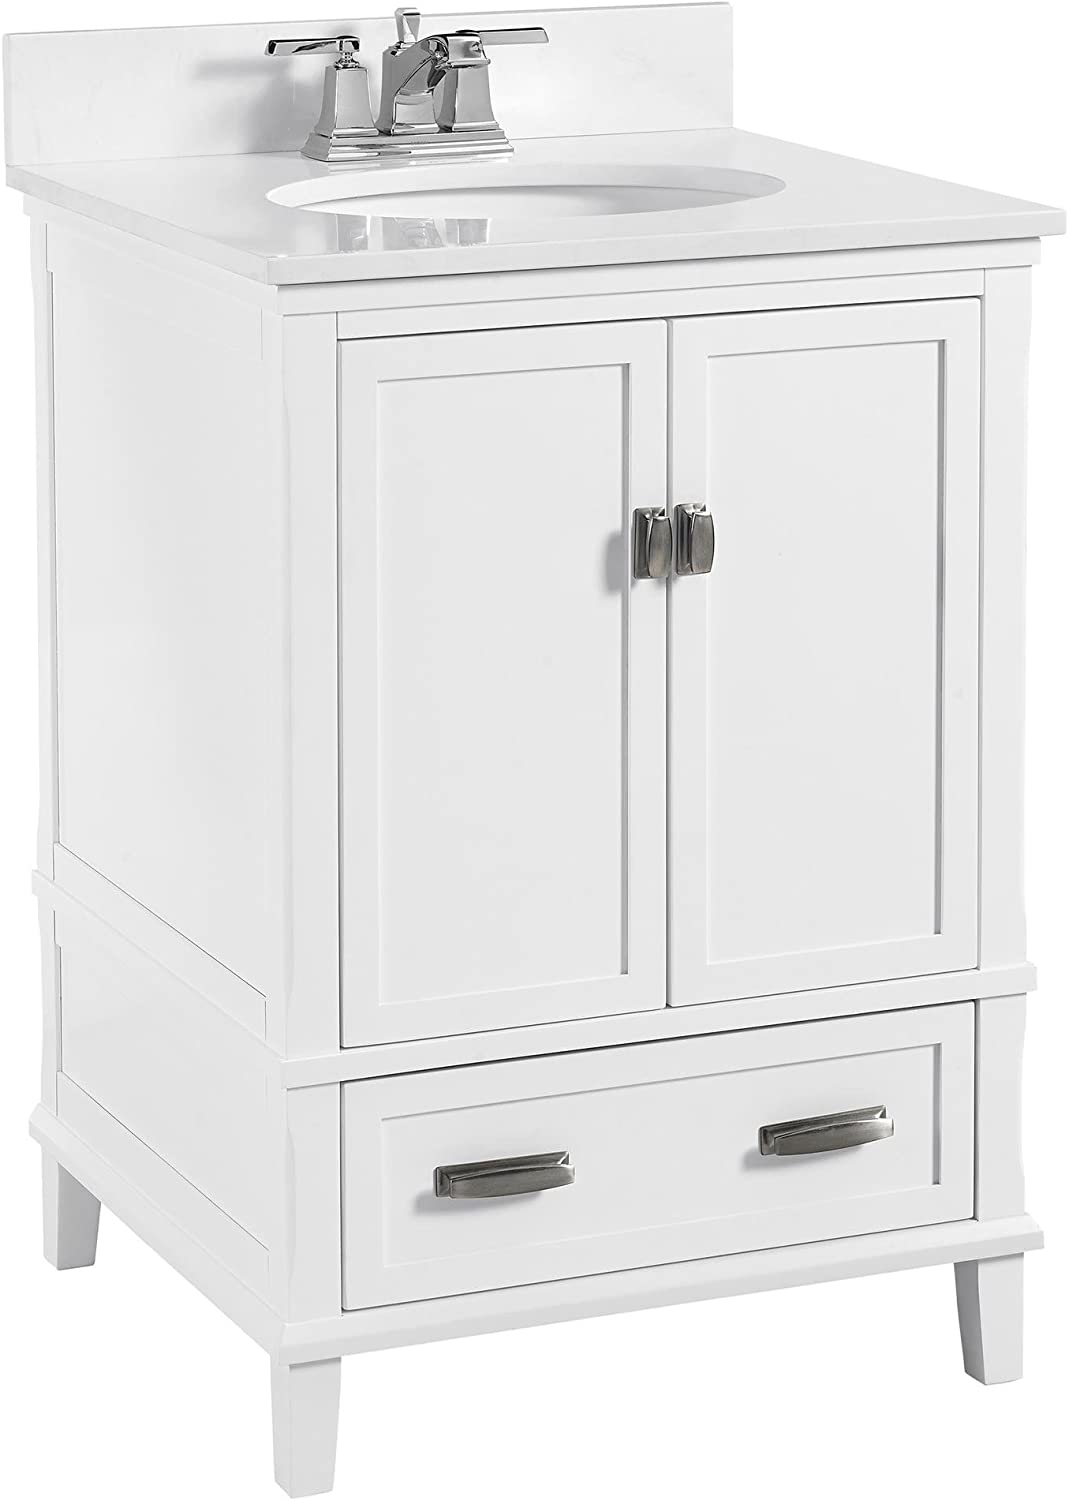 Amazon Com Dorel Living Otum 24 Bathroom Vanity White Furniture Decor